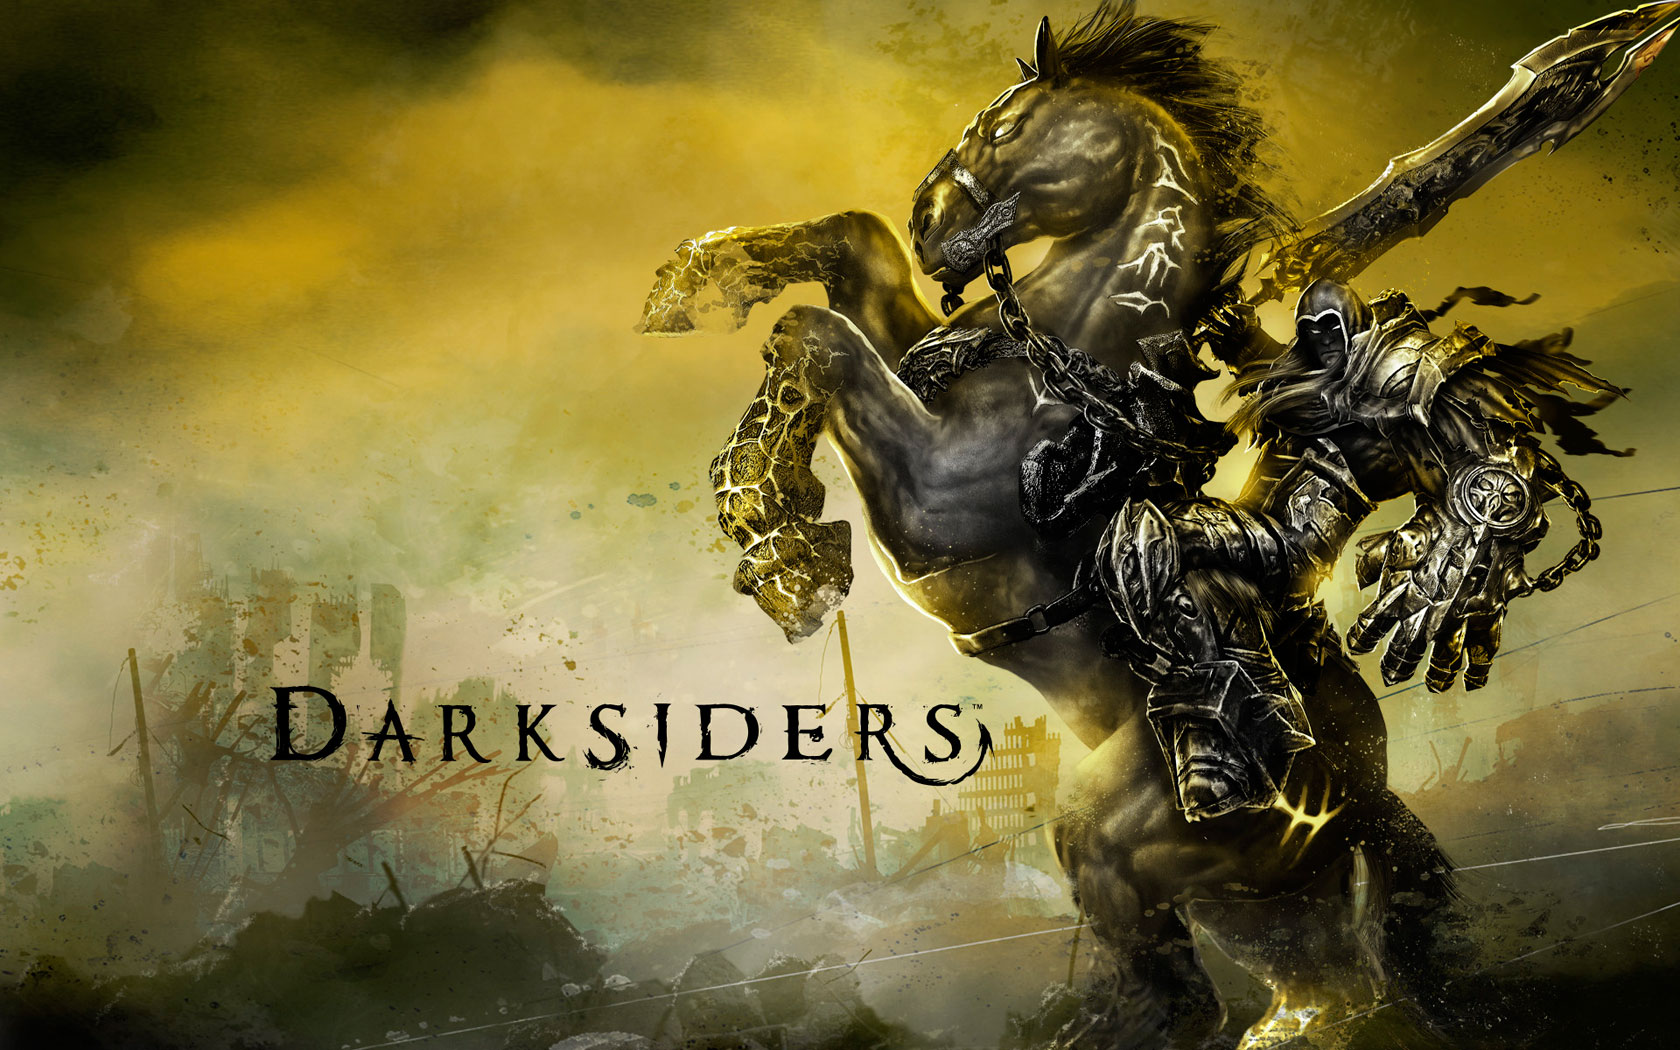 darksiders 1 pc game download